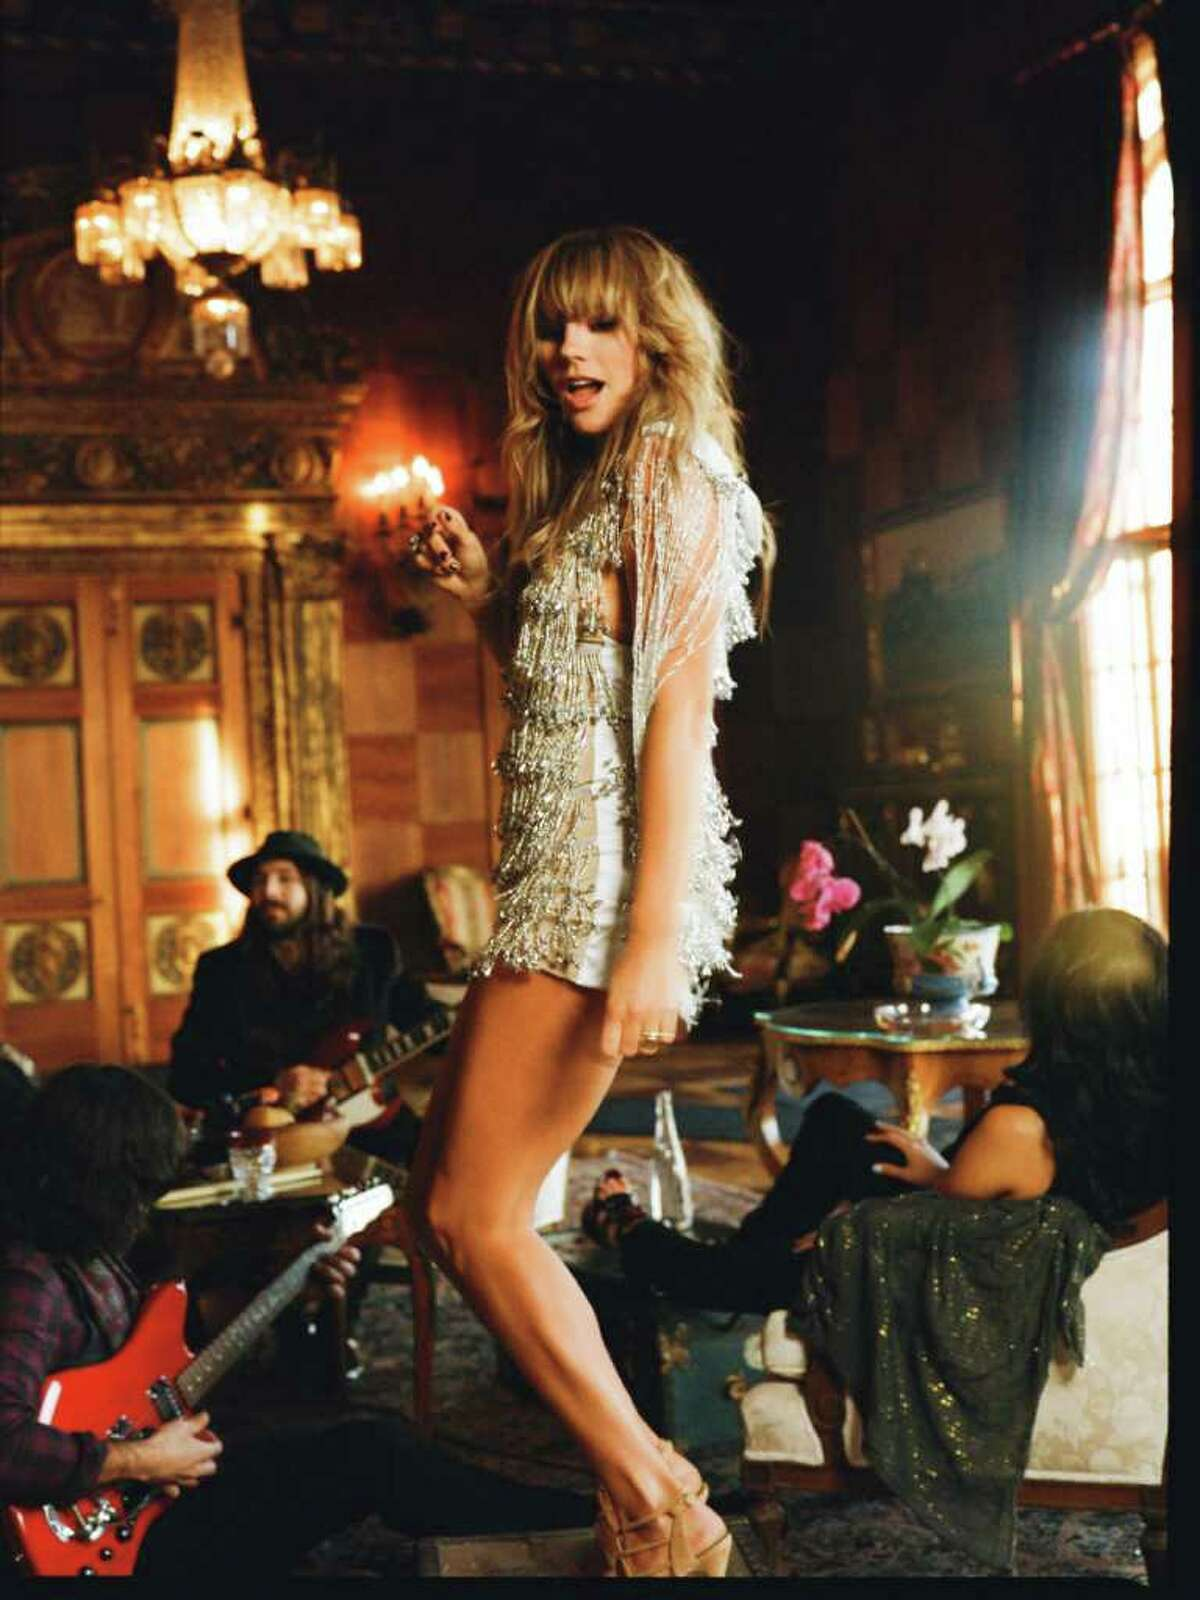 Grace Potter & the Nocturnals are scheduled to perform at the second annual Greenwich Town Party, slated for May 26 at Roger Sherman Baldwin Park. Tickets go on sale March 15.